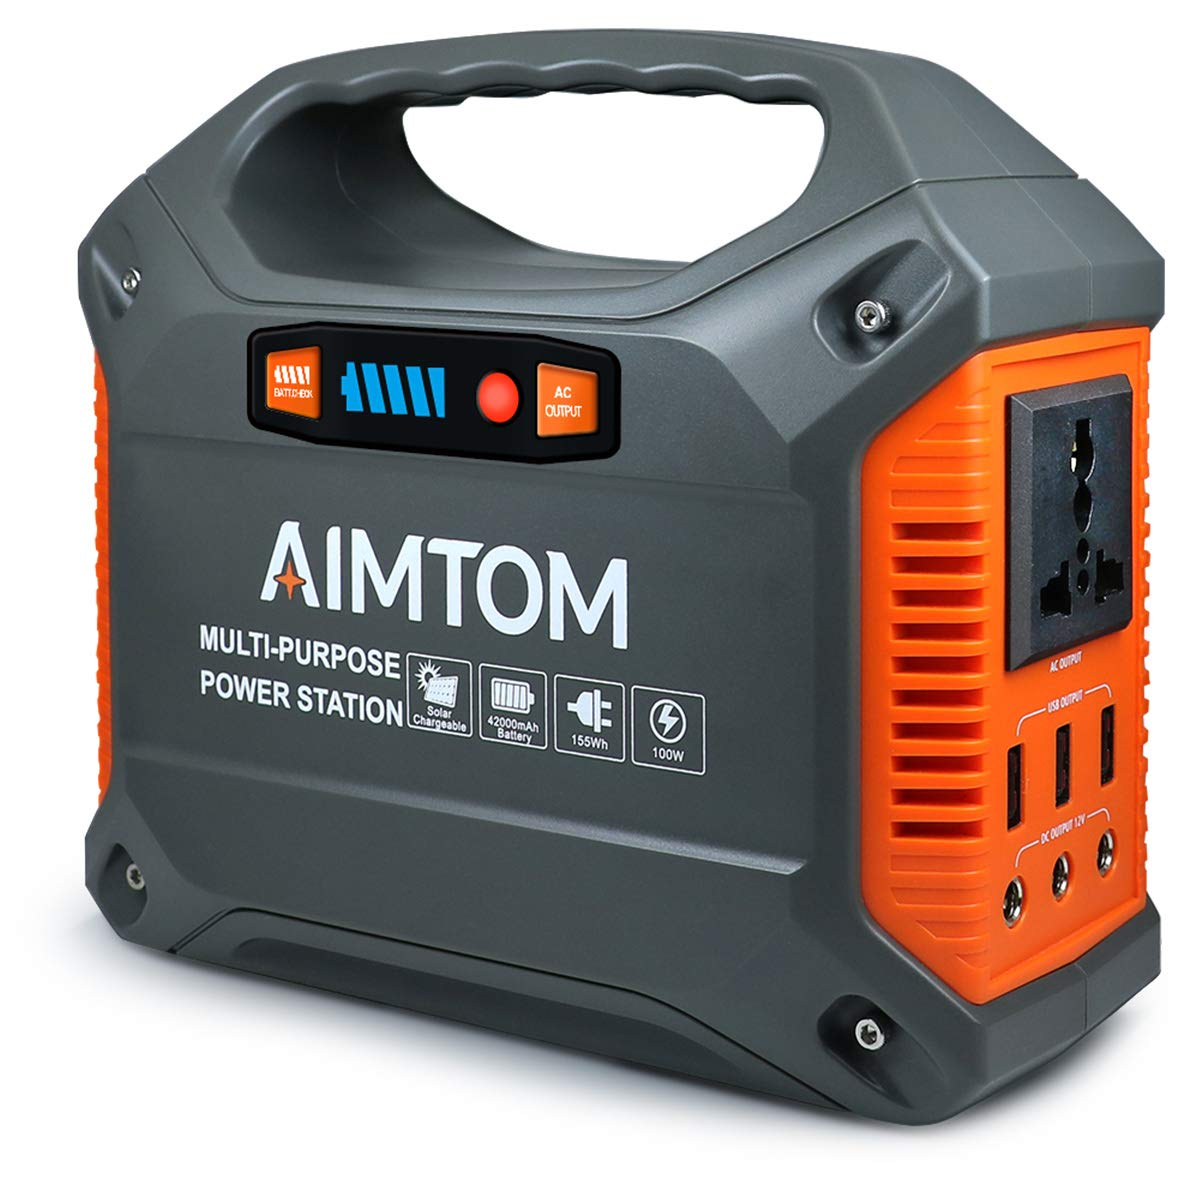 AIMTOM Portable Solar Generator, 42000mAh 155Wh Power Station, Emergency Backup Power Supply W/ Flashlights, for Camping, Home, CPAP, Travel, Outdoor (110V/ 100W AC Outlet, 3x 12V DC, 3x USB Output) product image